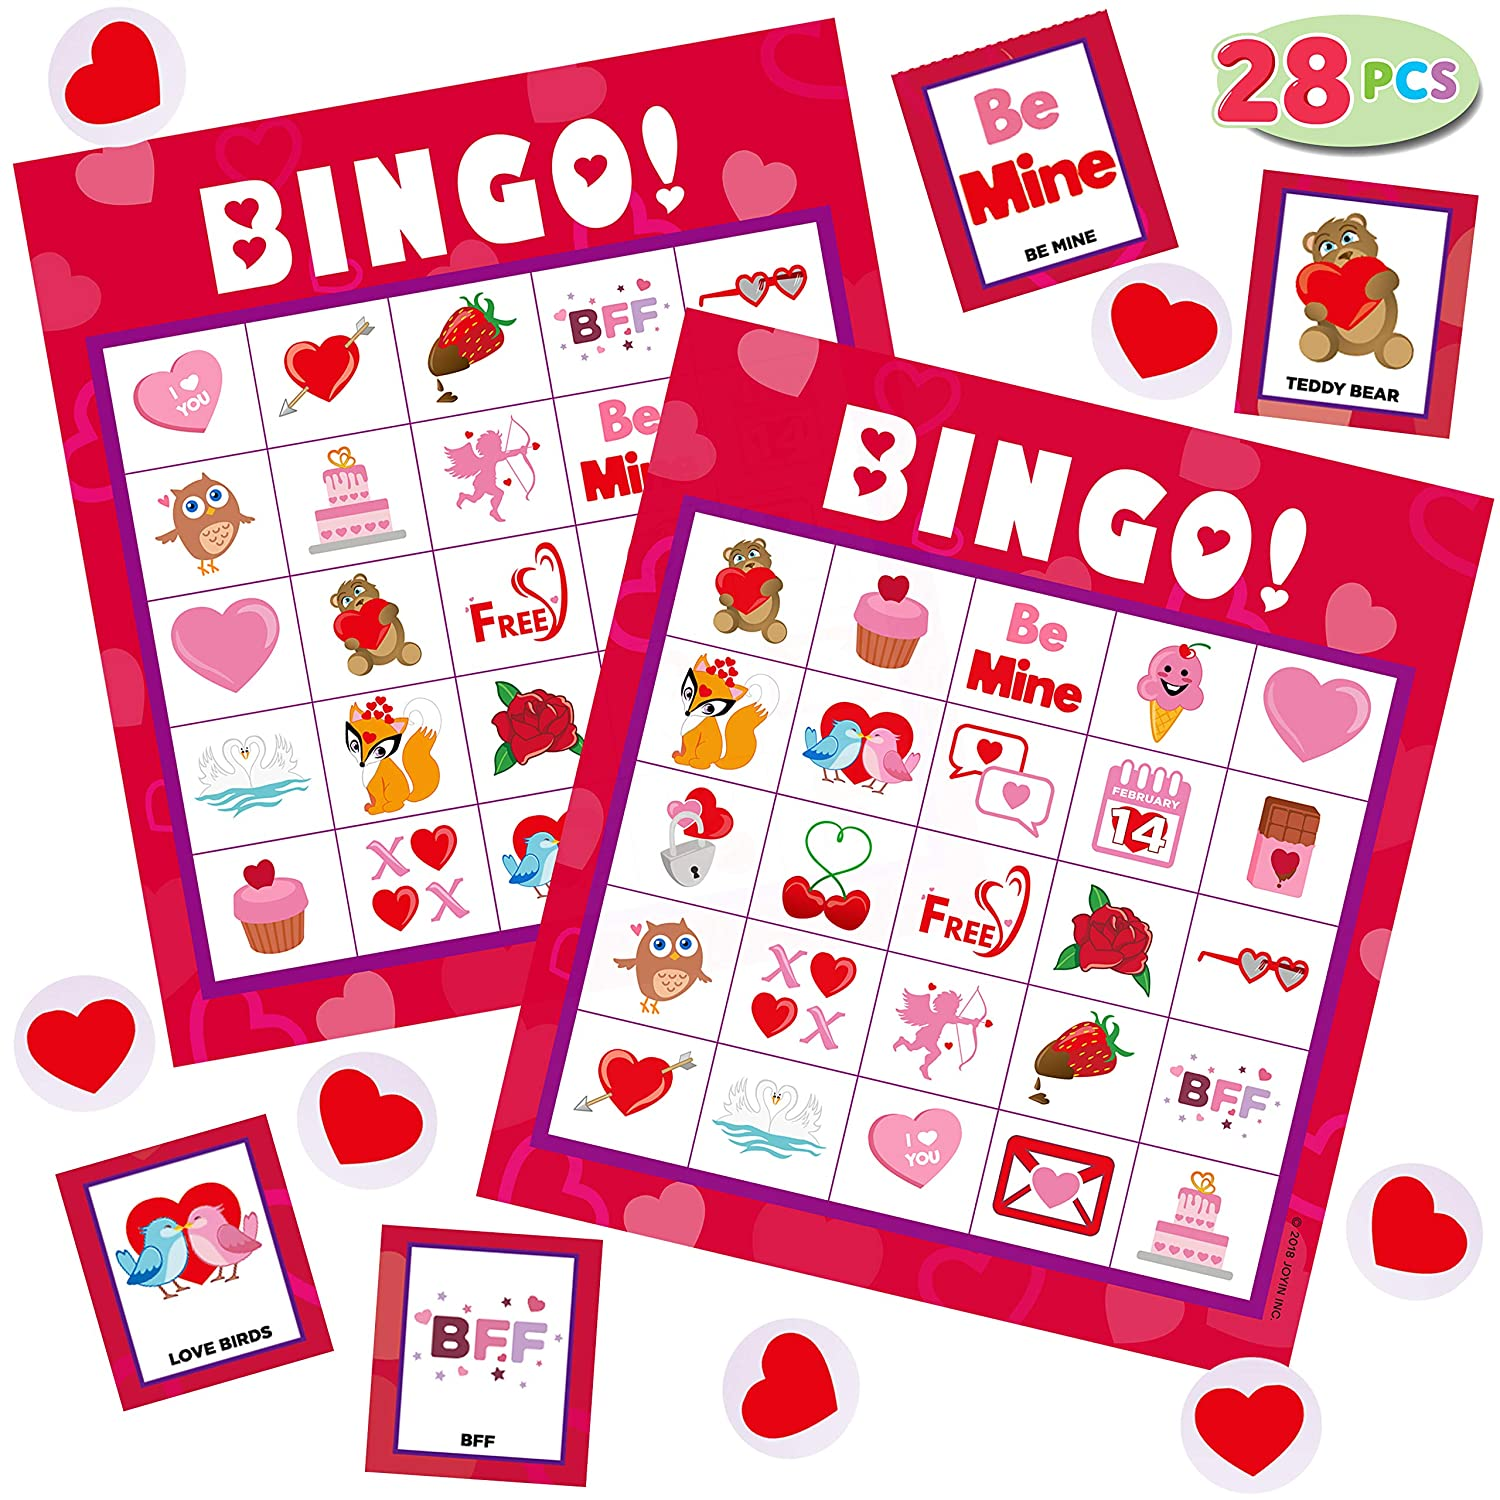 Valentines day bingo game cards 5x5 28 players for kids party card games school classroom games love party favors supplies family activity